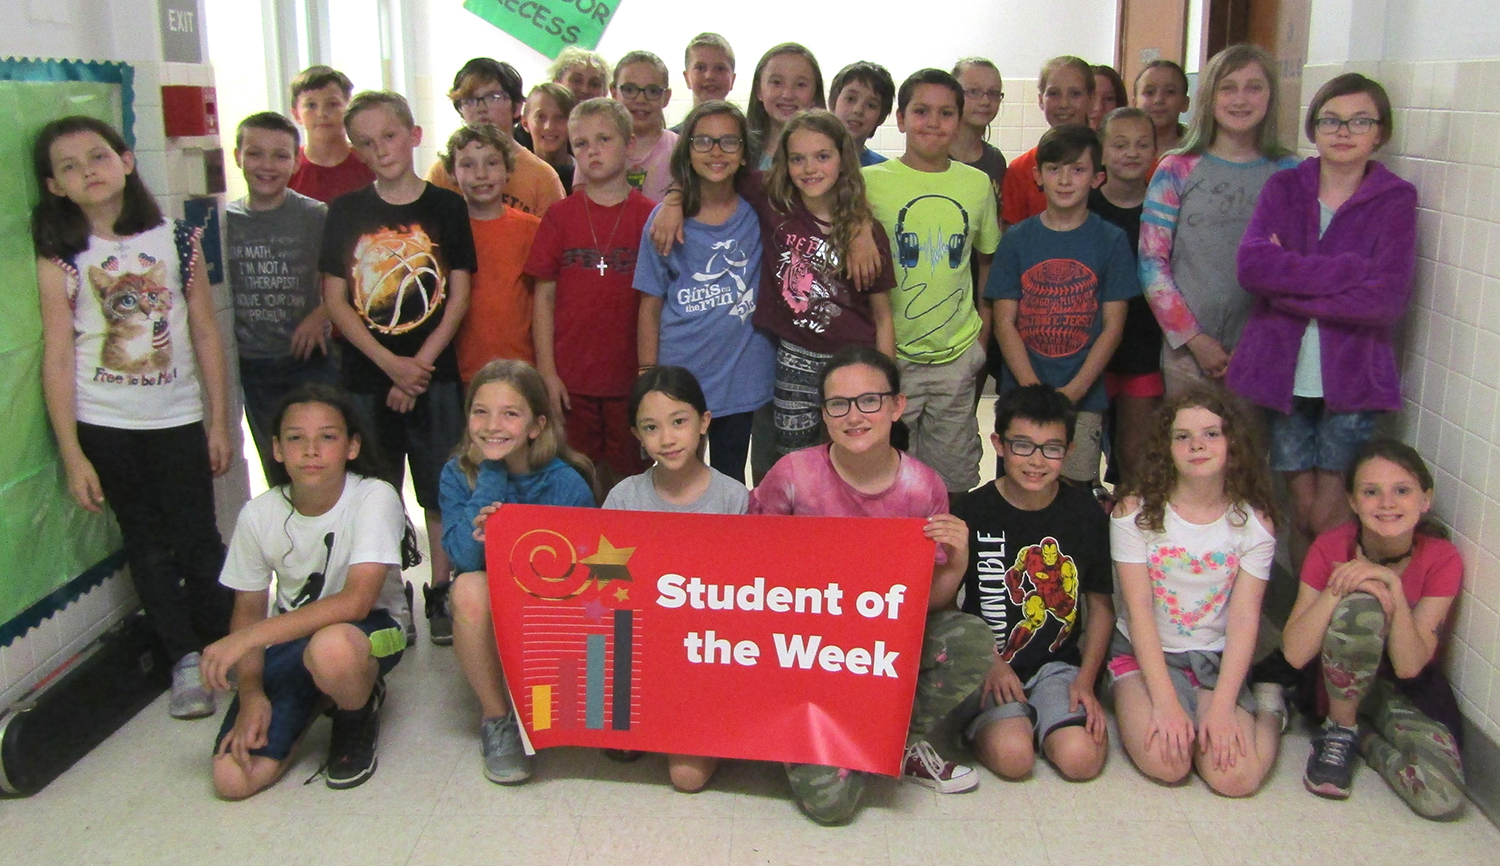 Student of the Week 5th grade